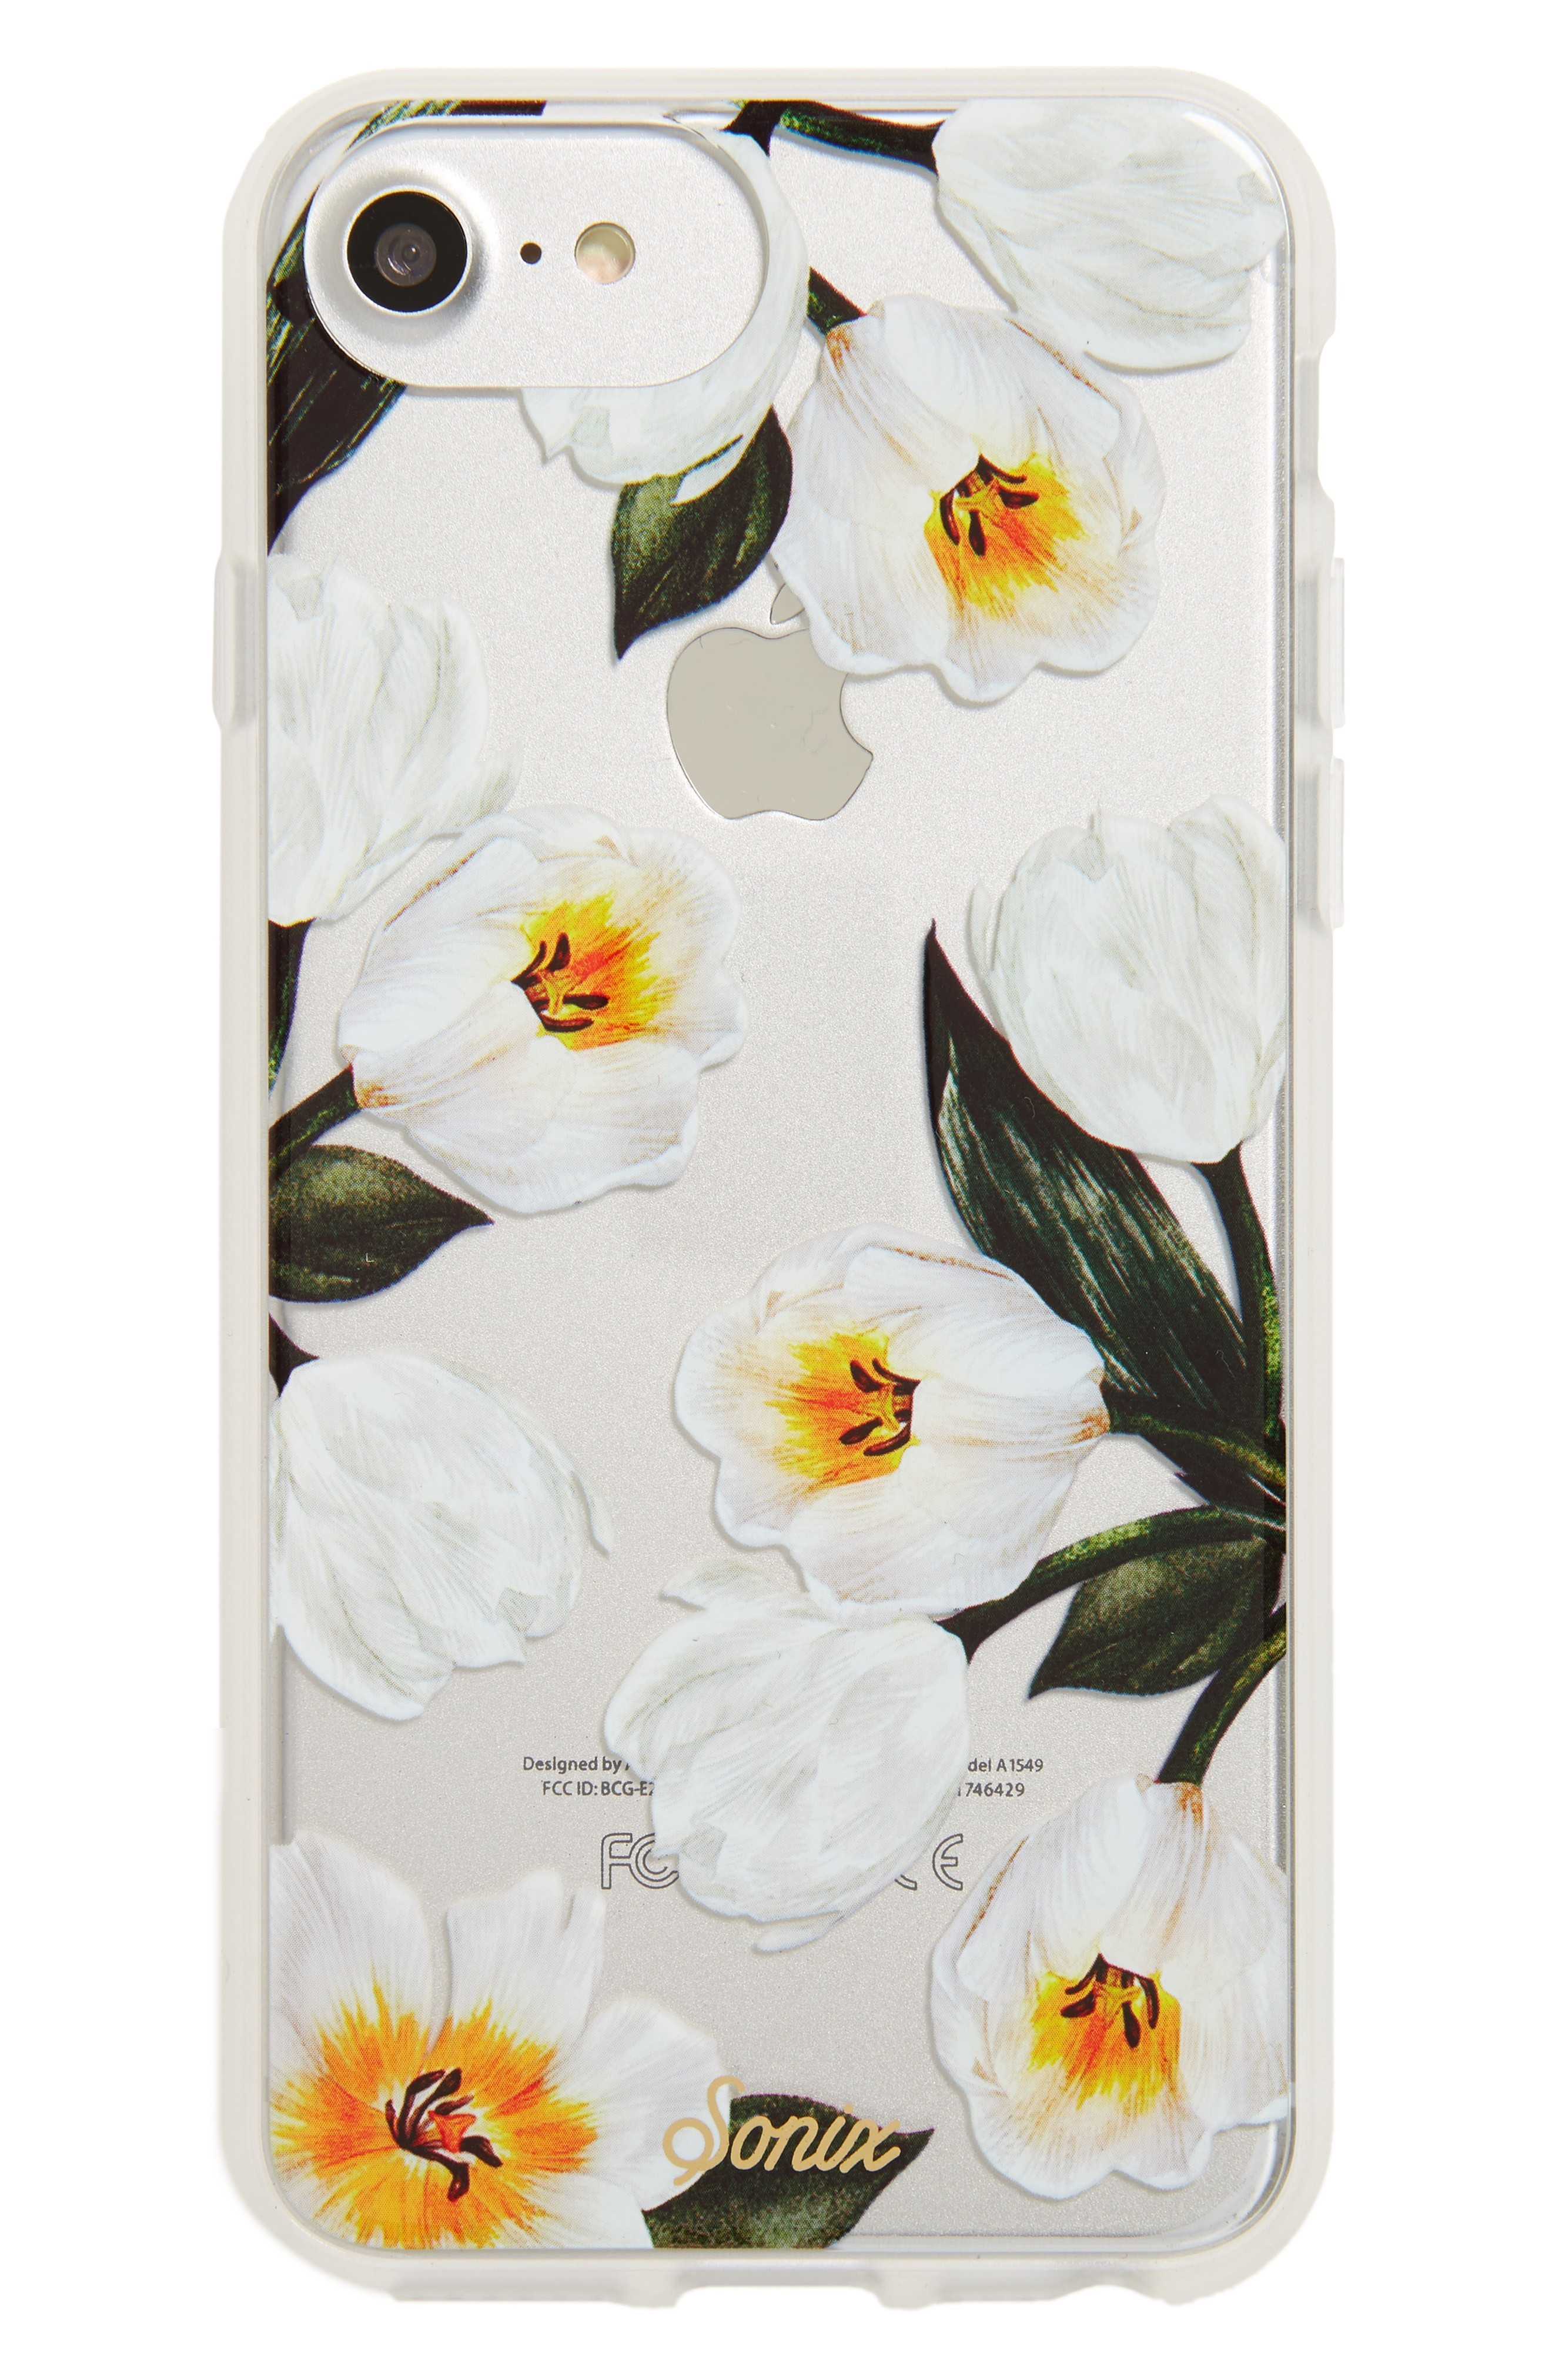 ☆Sonix Tulip iPhone 6/6s/7/8 & 6/6s/7/8 Plus Case☆